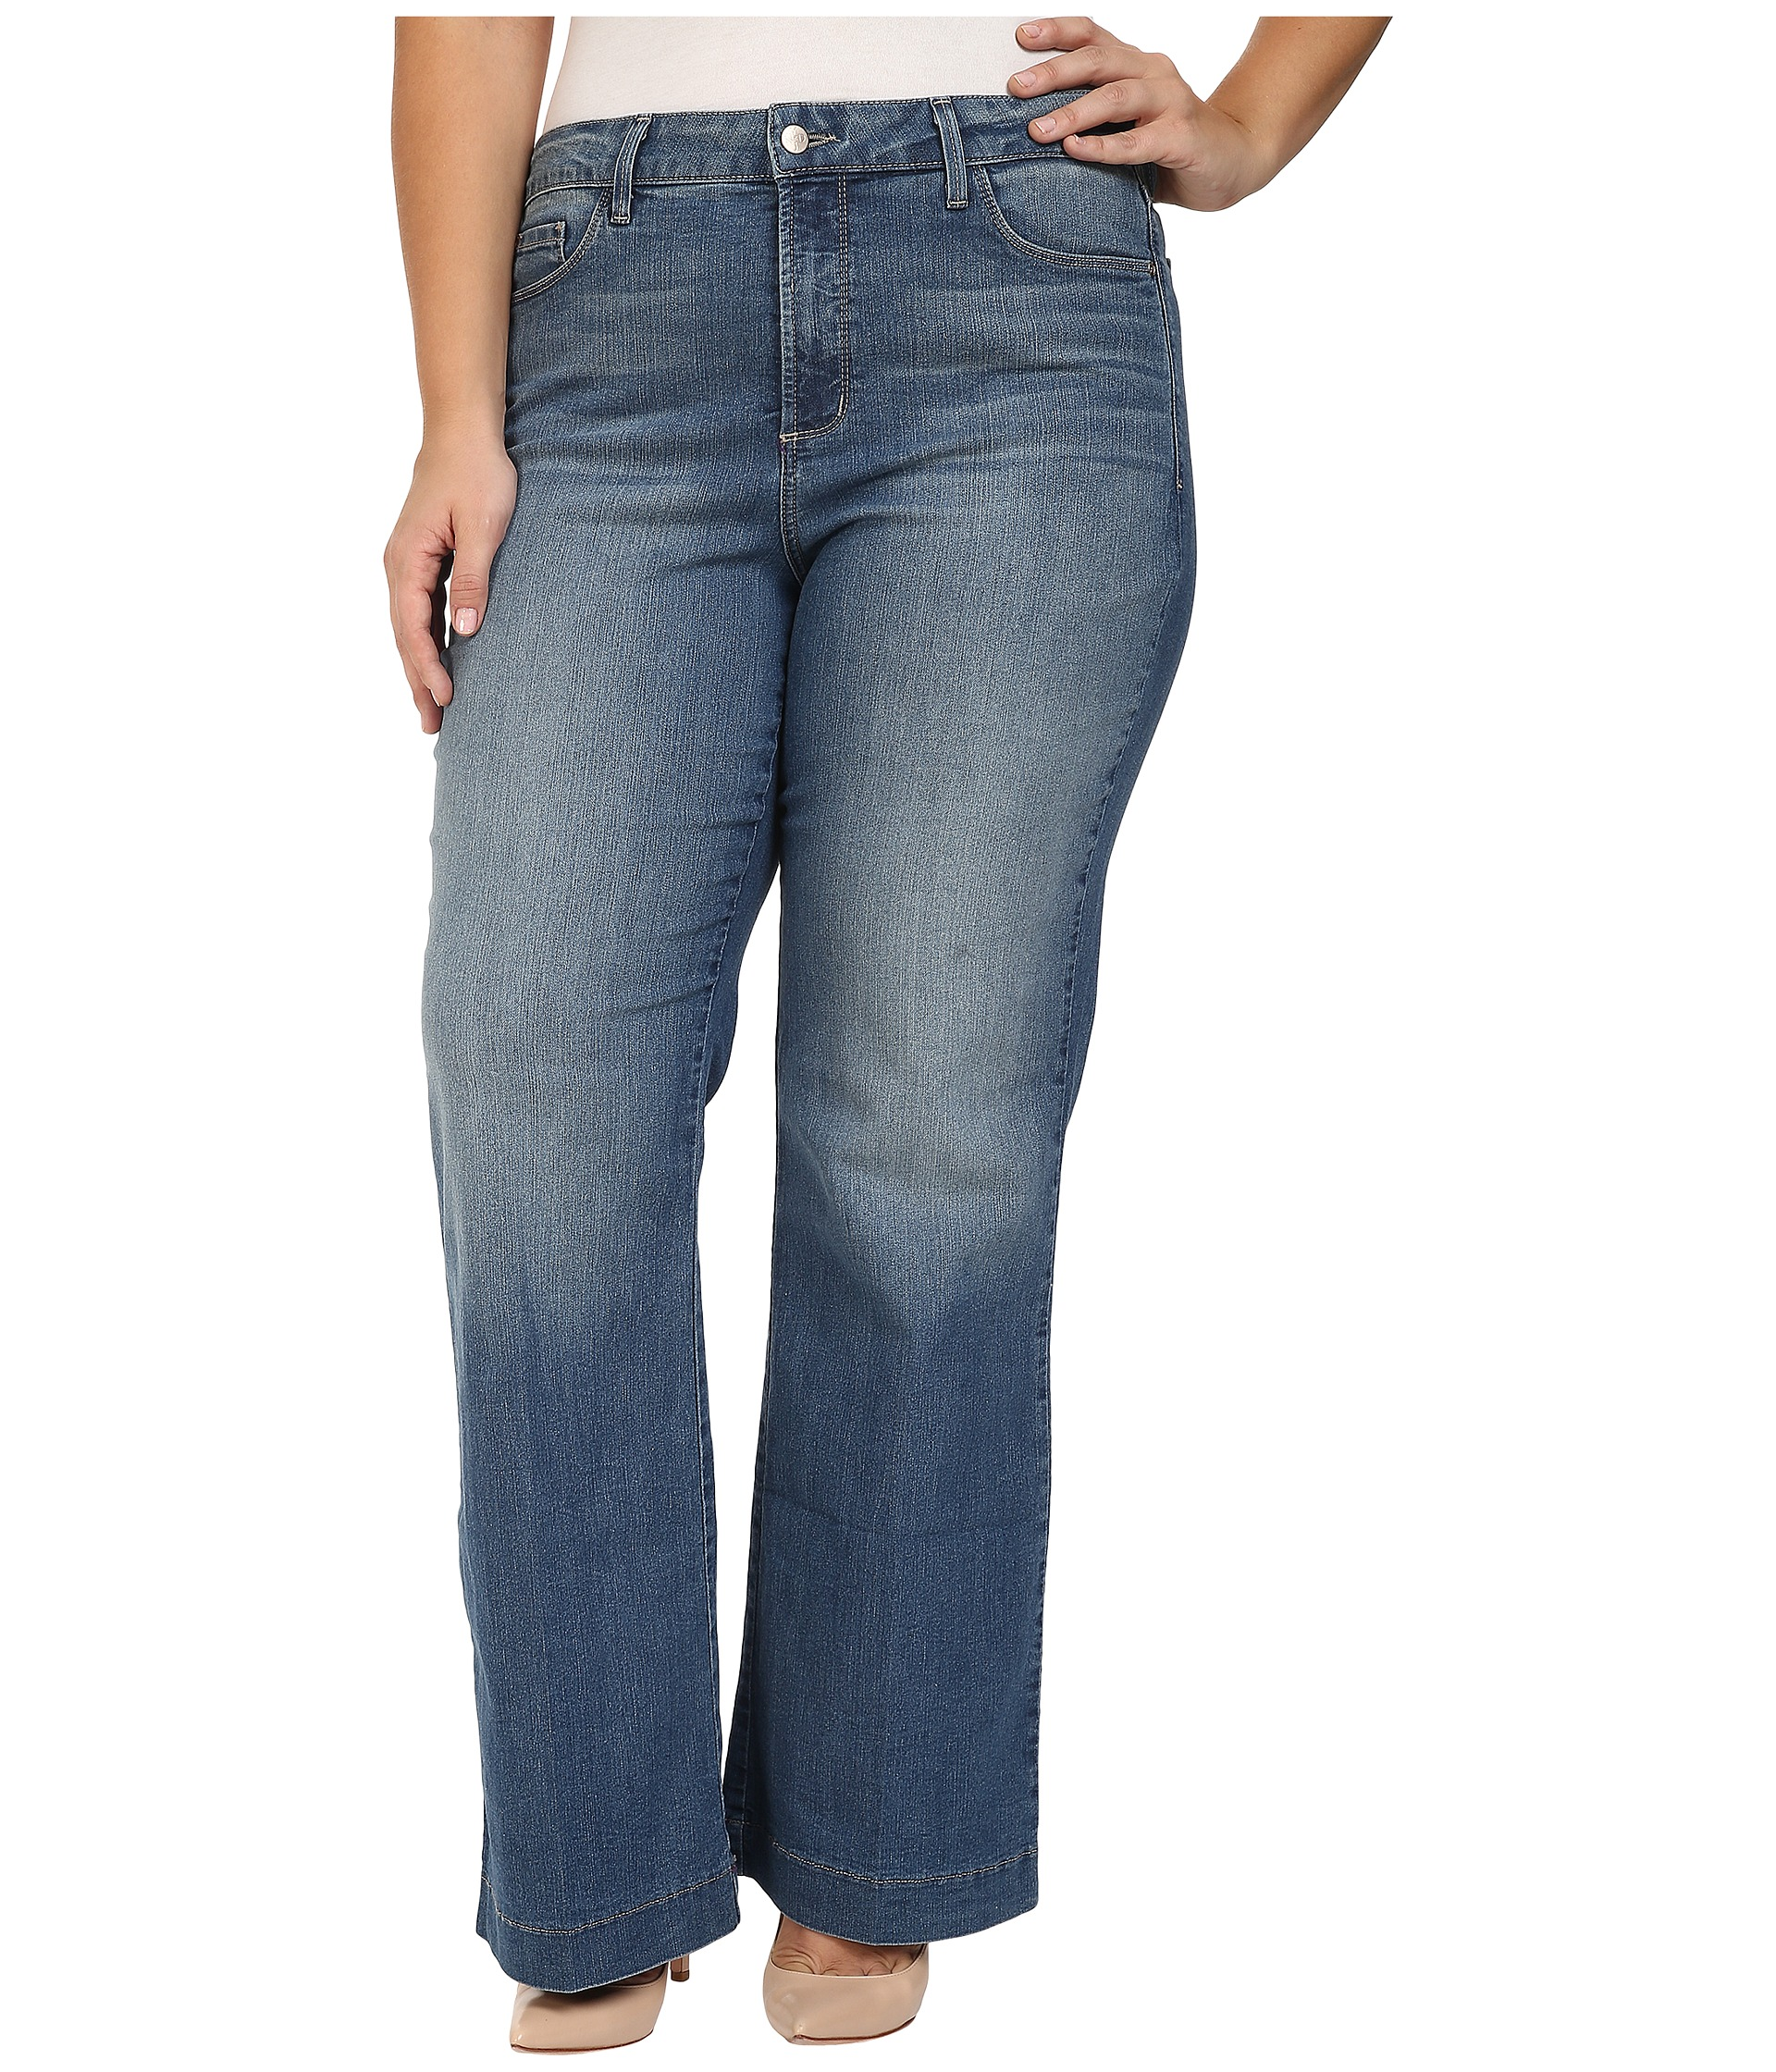 naafii Missy & Plus Size Basic Loose Wide Leg Capri Jeans Pants. by naafii. $ - $ $ 25 $ 29 99 Prime. FREE Shipping on eligible orders. Some sizes/colors are Prime eligible. out of .